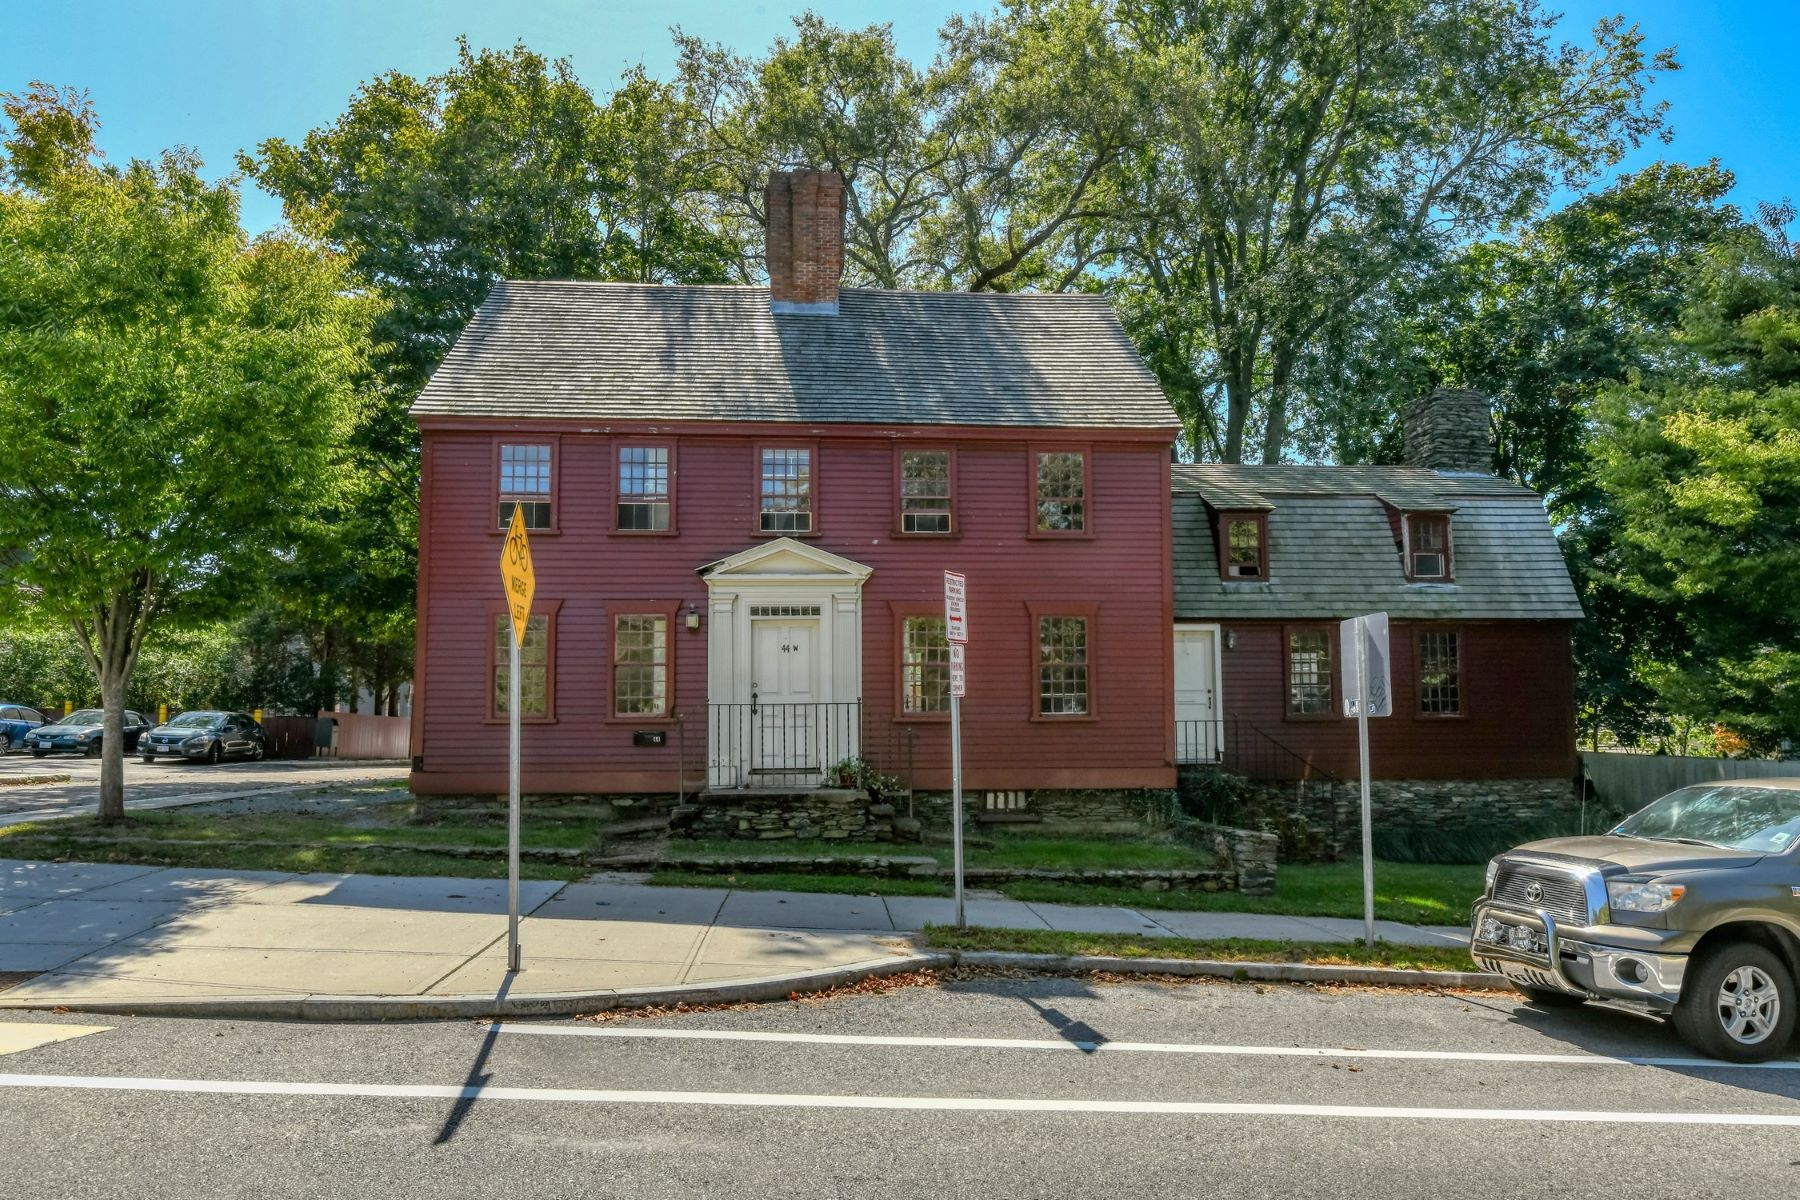 Multi-Family Homes for Sale at 1730's Stone End Colonial 44-46 Memorial Boulevard Newport, Rhode Island 02840 United States